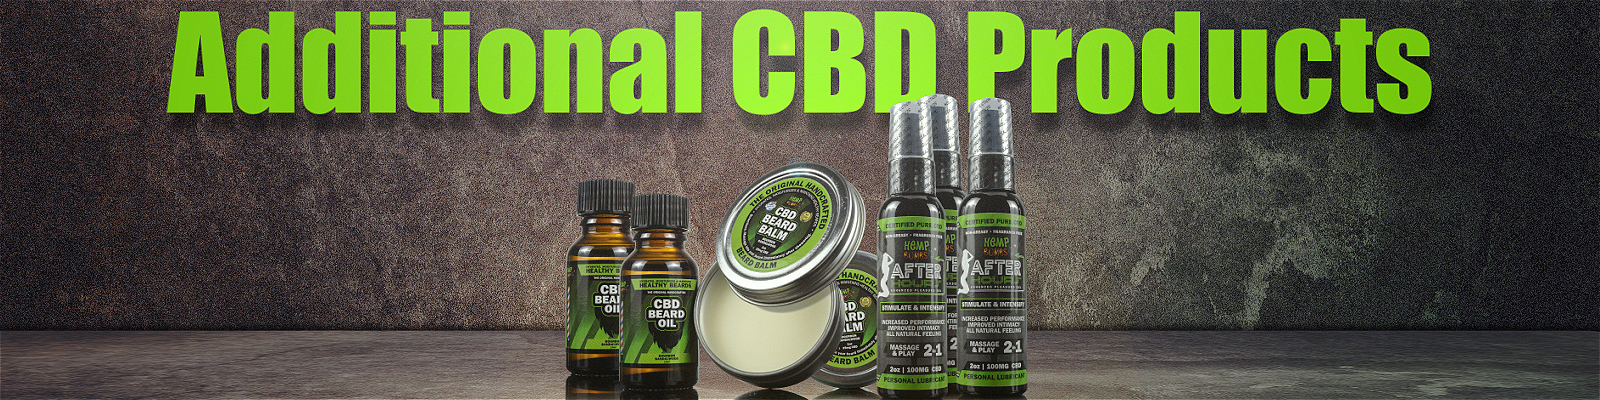 Additional CBD Products | Lube, beard balm, beard oil